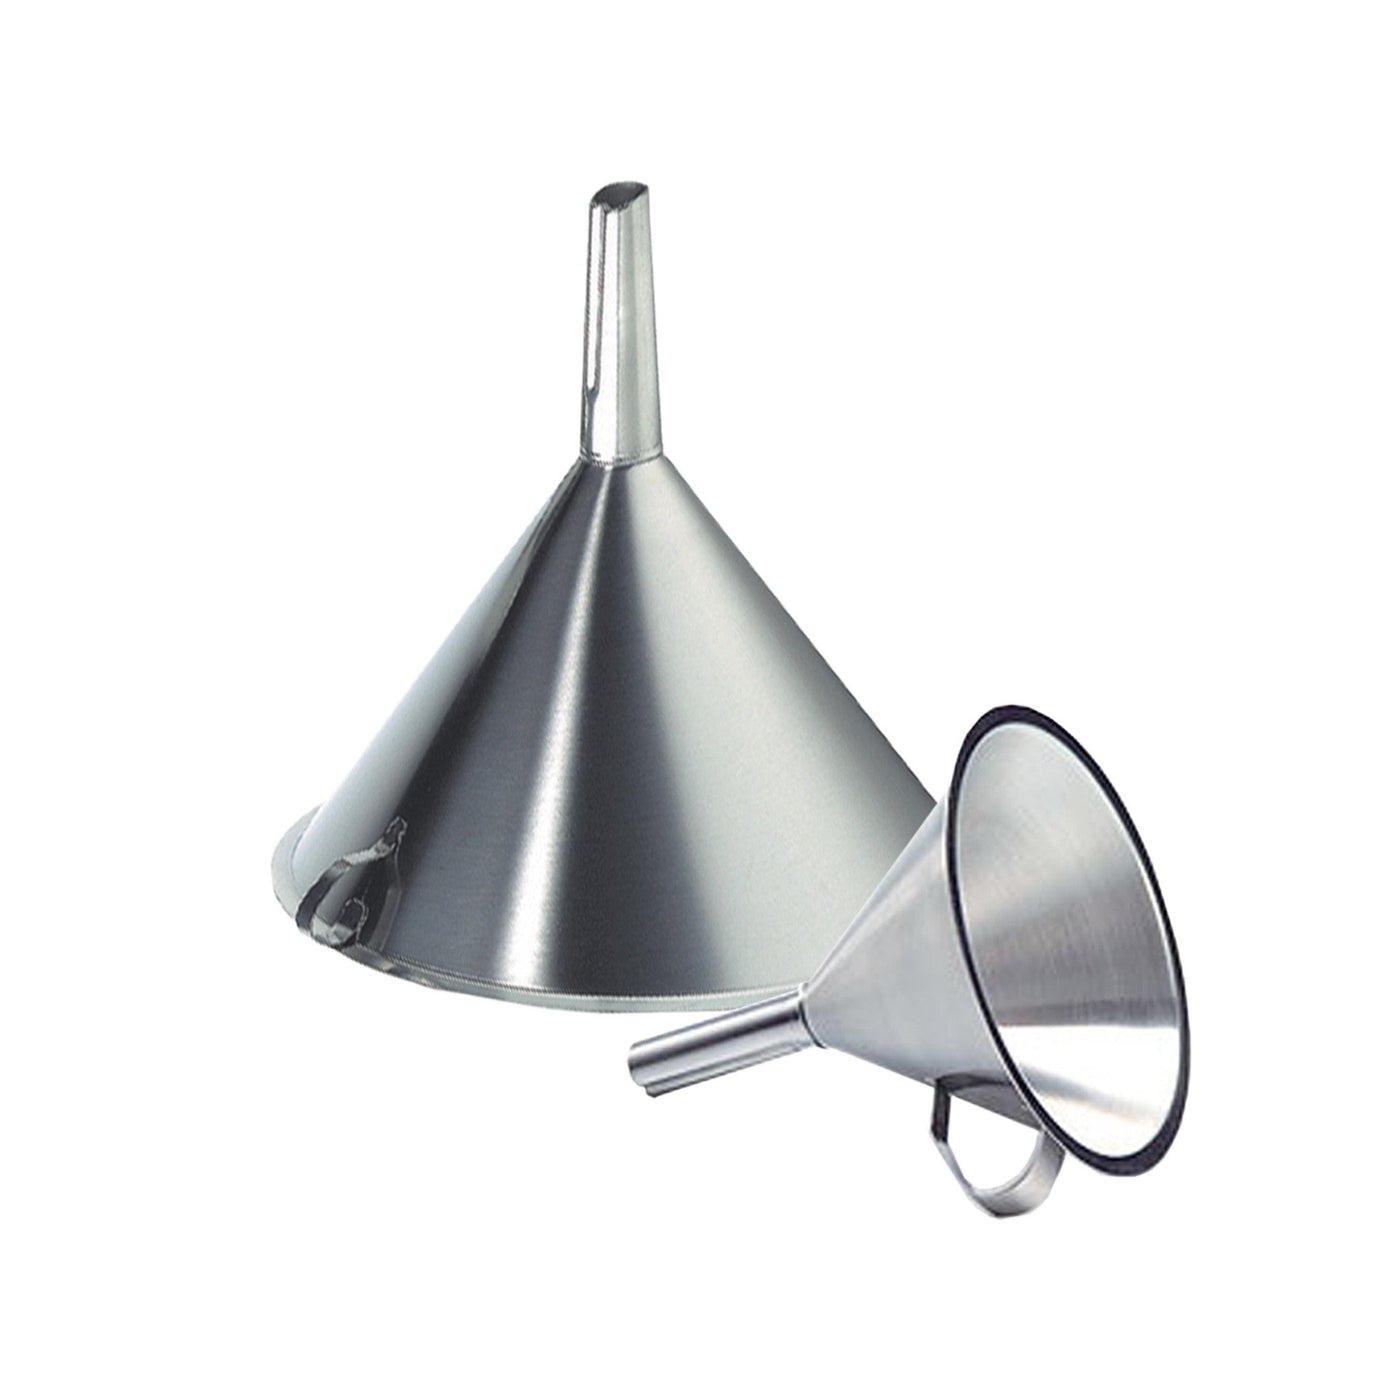 Funnels-Laboratory Accessory-Mortech Manufacturing Company Inc. Quality Stainless Steel Autopsy, Morgue, Funeral Home, Necropsy, Veterinary / Anatomy, Dissection Equipment and Accessories